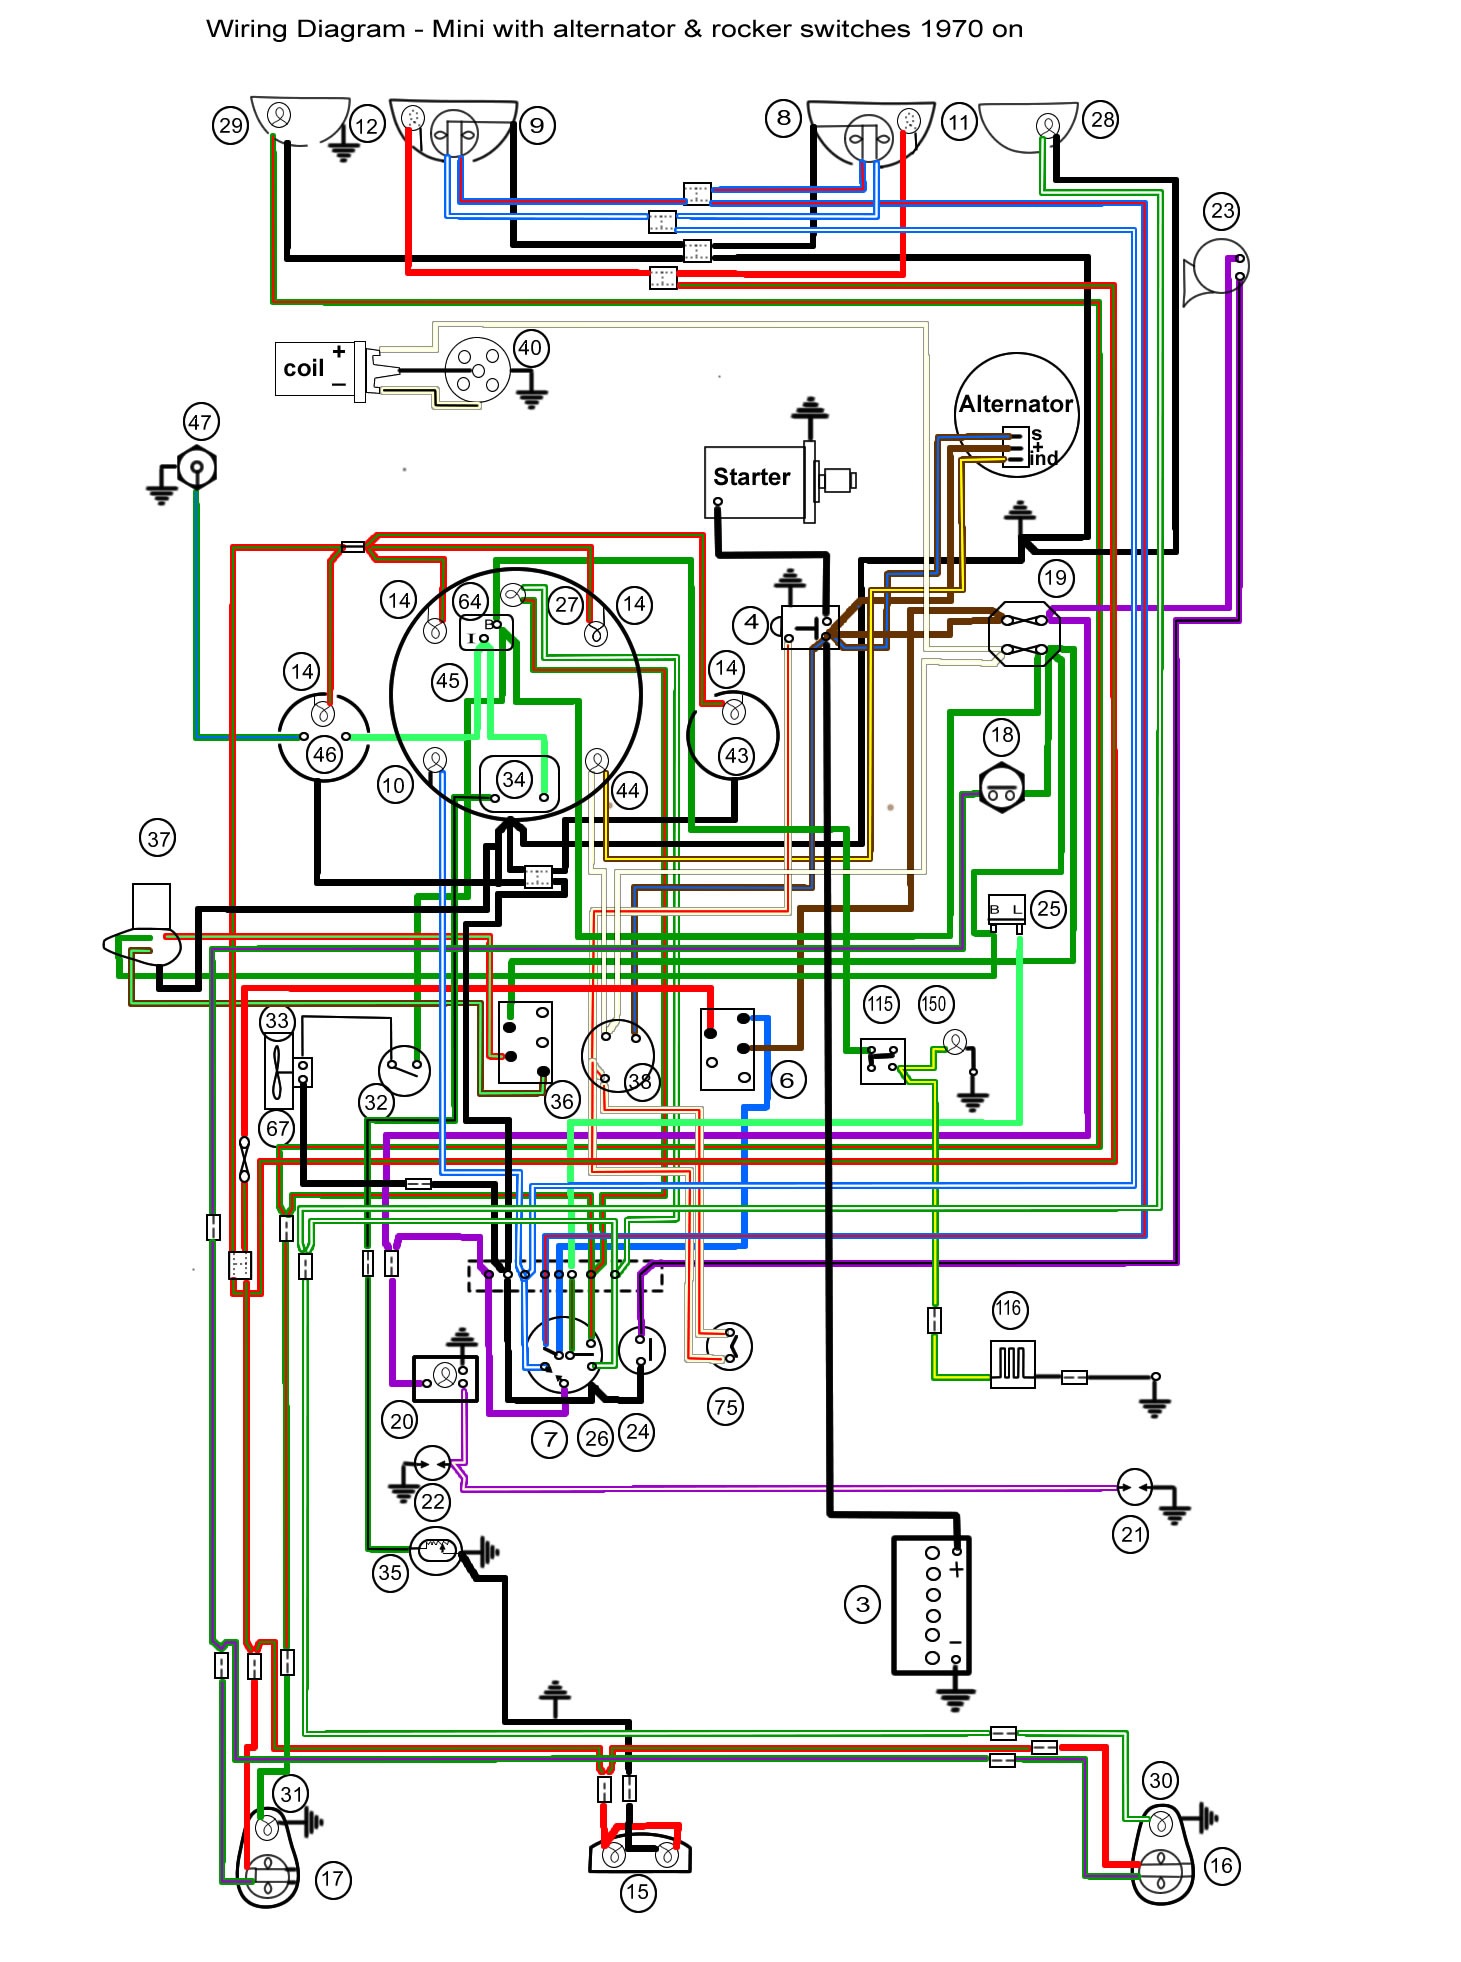 austin mini wiring diagram wire center u2022 rh caribcar co classic mini wiper motor wiring diagram classic mini wiring loom diagram